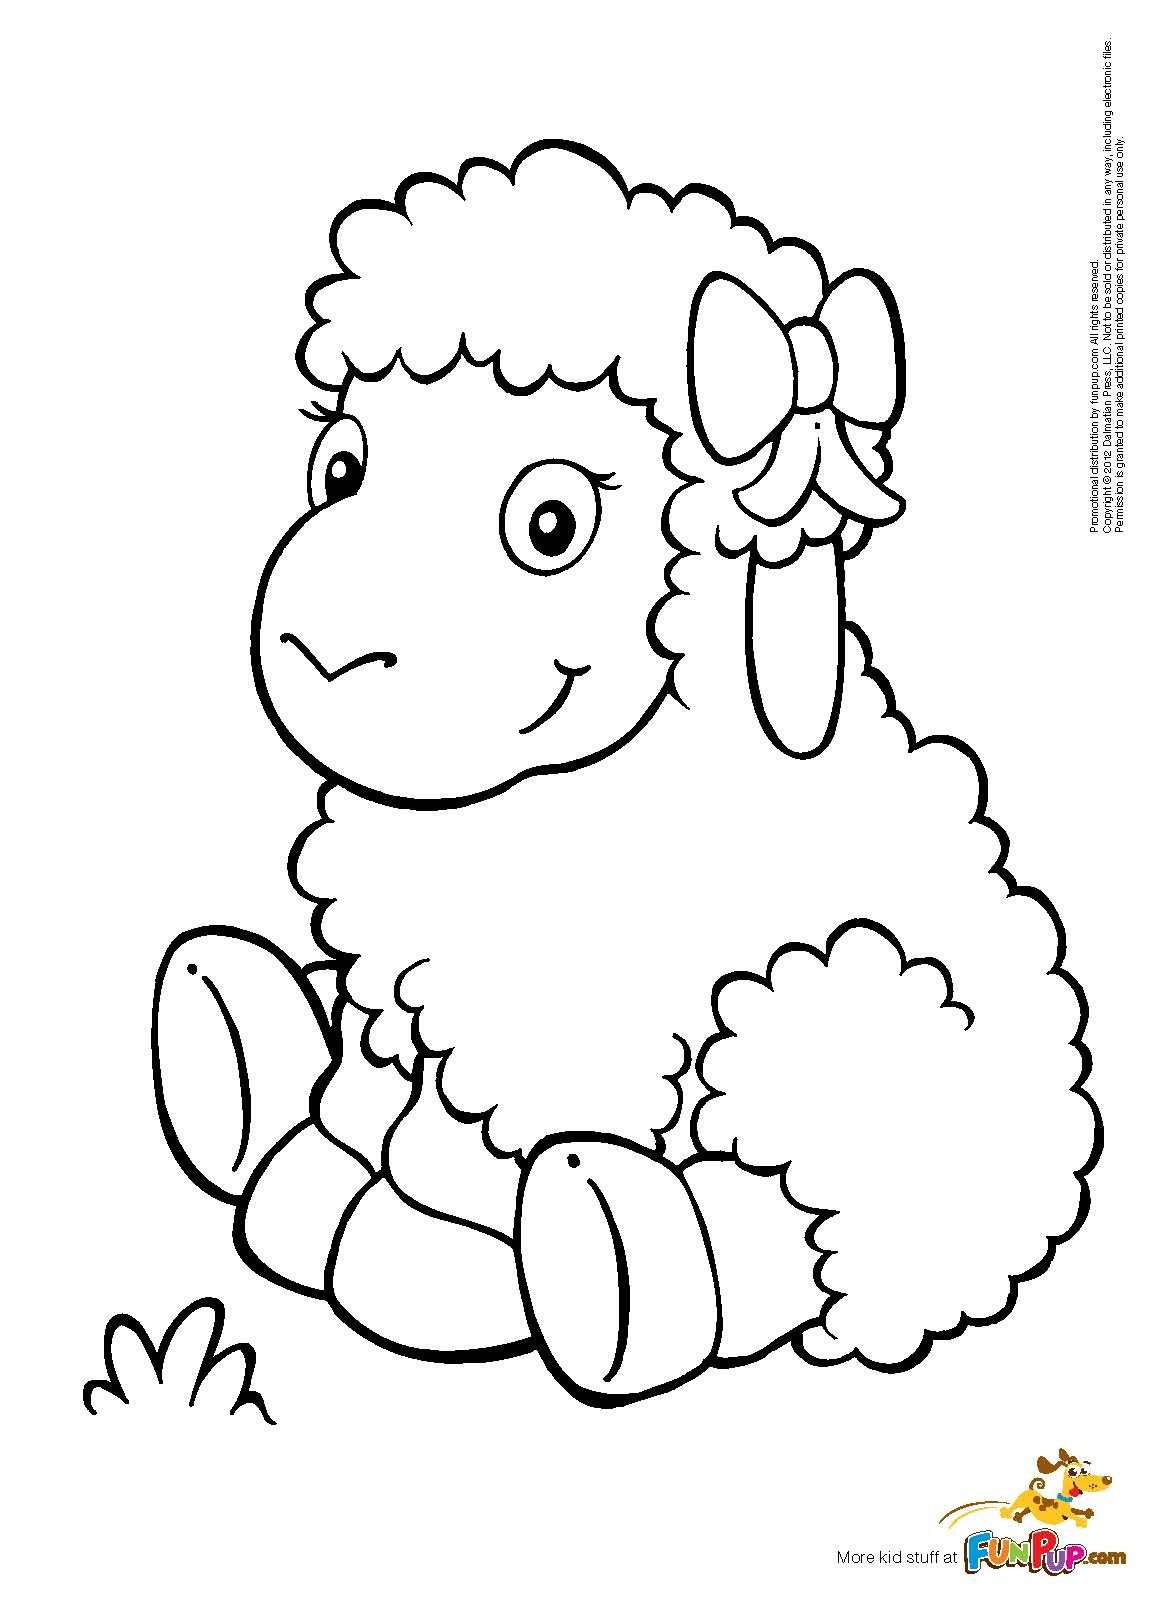 Pin by MemoArt Design n Clothing on Coloring Pages